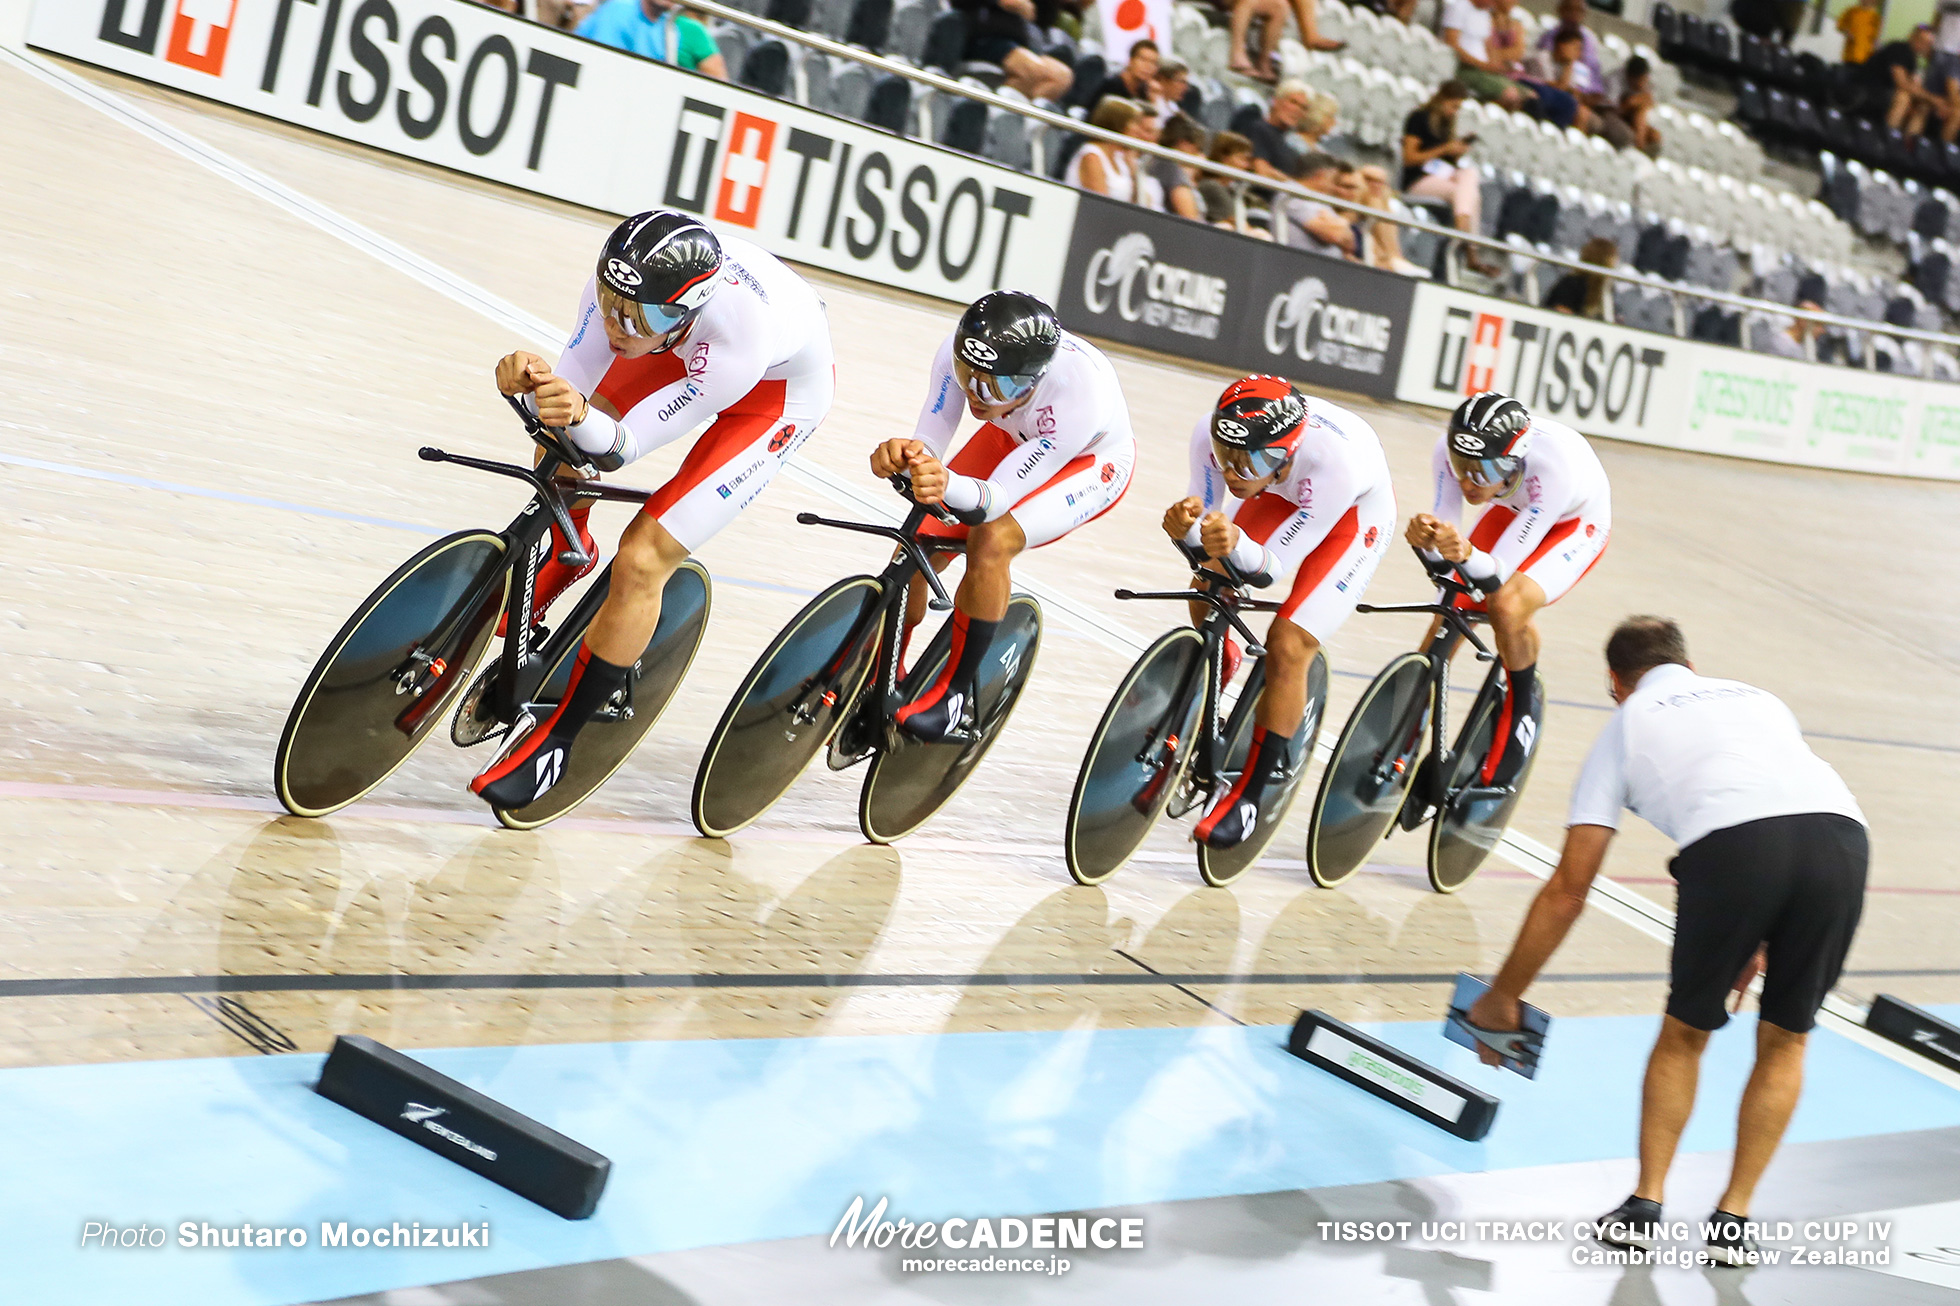 Qualifying / Men's Team Pursuit / TISSOT UCI TRACK CYCLING WORLD CUP IV, Cambridge, New Zealand, 近谷涼 今村駿介 窪木一茂 沢田桂太郎